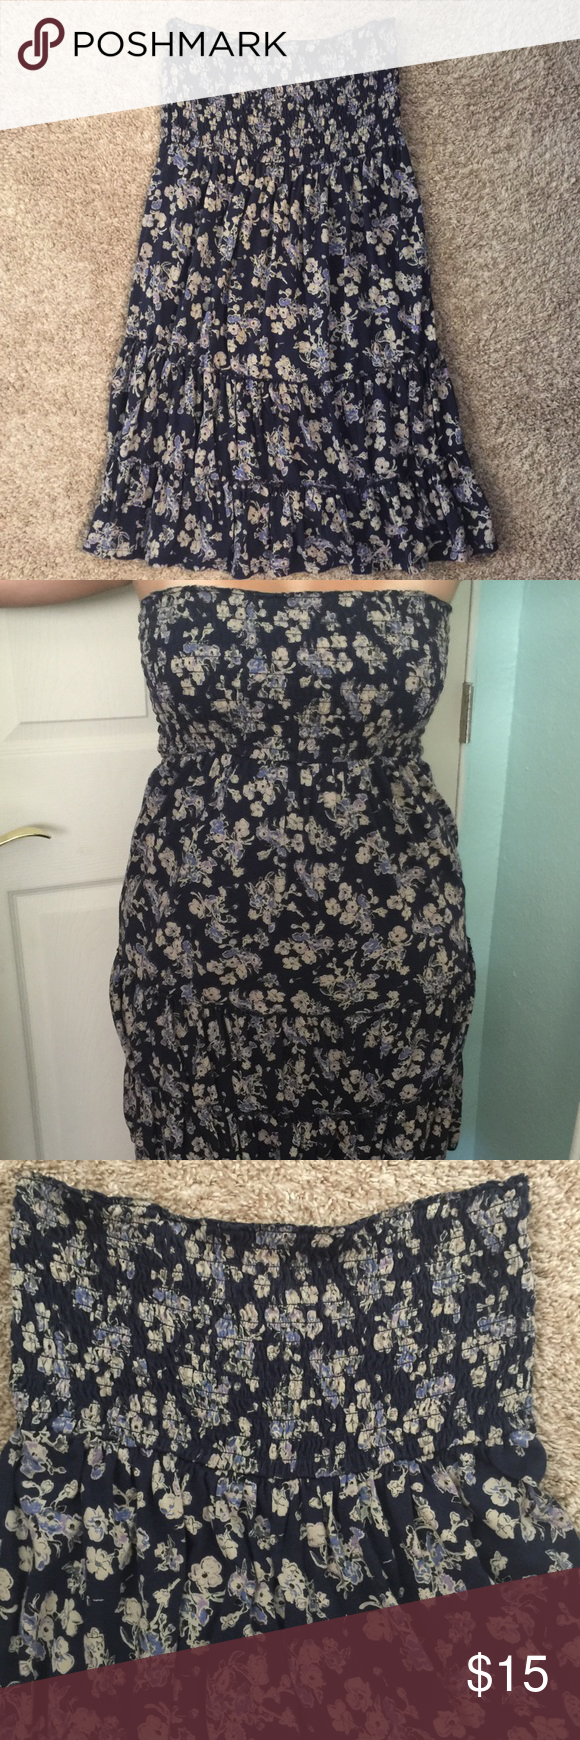 Tube top dress from Express. Selling a cute and comfy tube top dress. Elastic on top and cute ruffles on bottom. Very flattering on. Hits right above the knee. Size large. Non smoking home! Great condition. Express Dresses Strapless